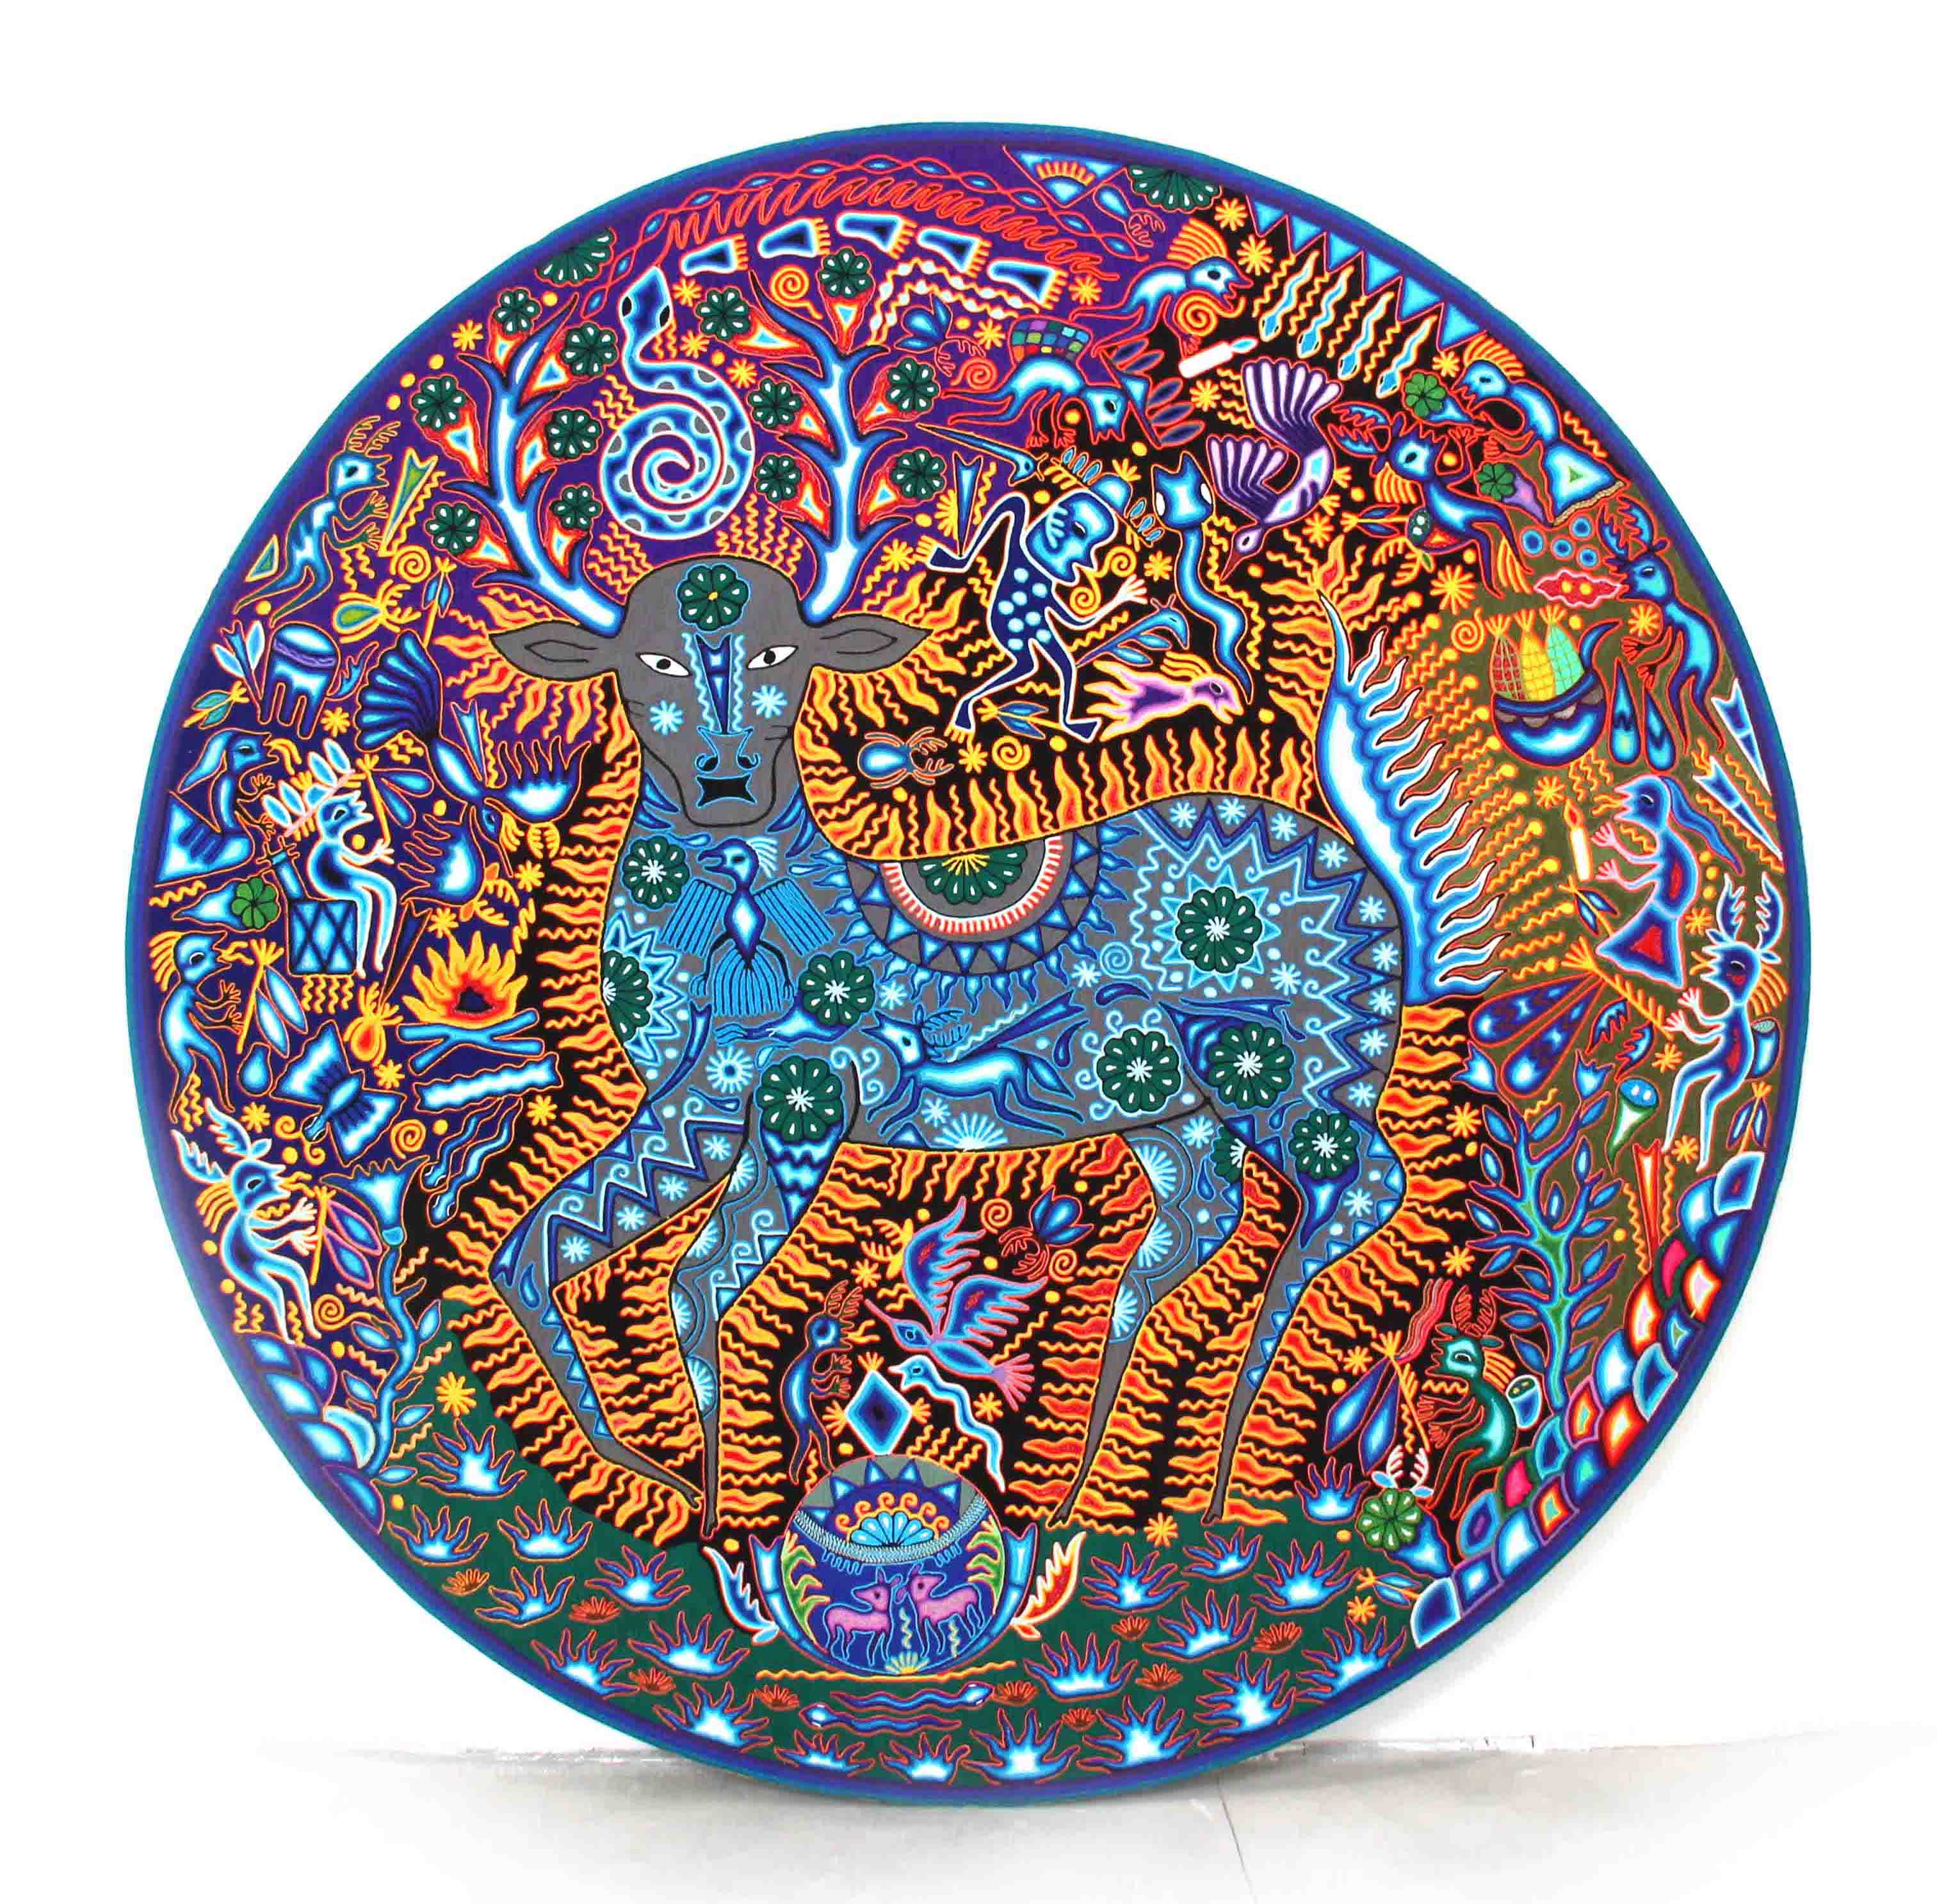 Huichol yarn nierika in a 160 cm wooden circle. in diameter with a deer and peyotes